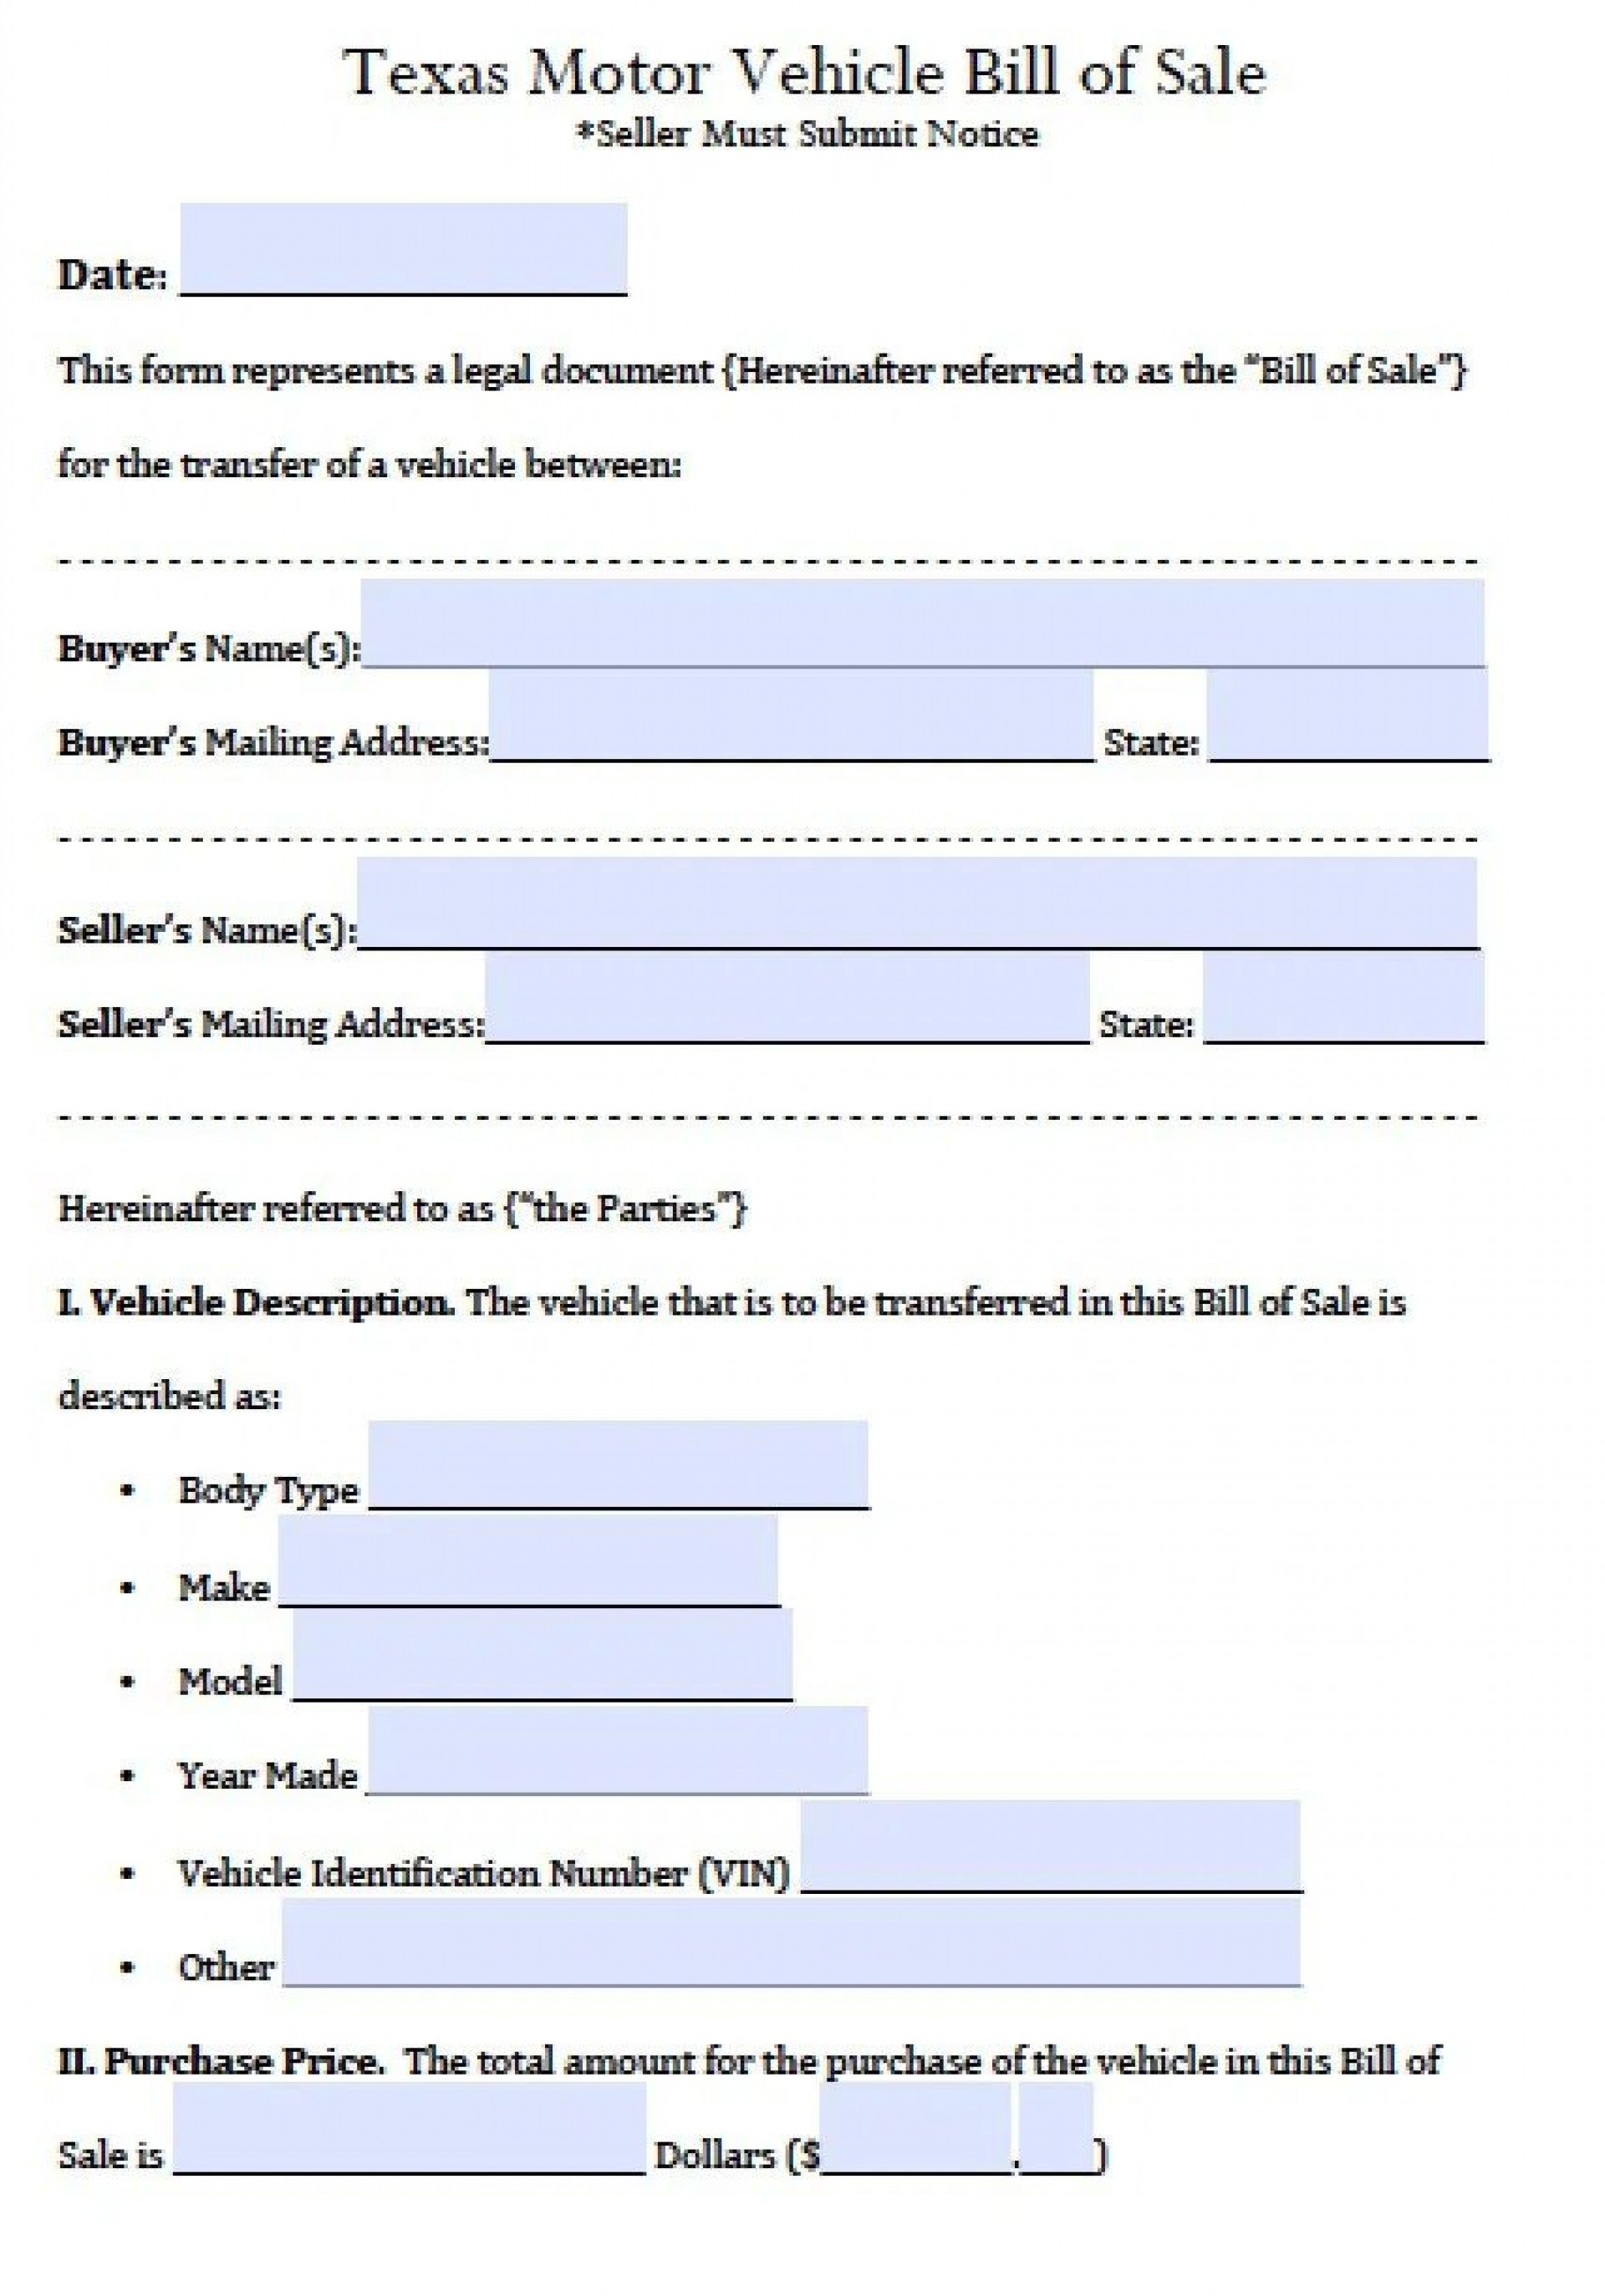 003 Incredible Bill Of Sale Texa Template Inspiration  Motor Vehicle Form Free Printable1920